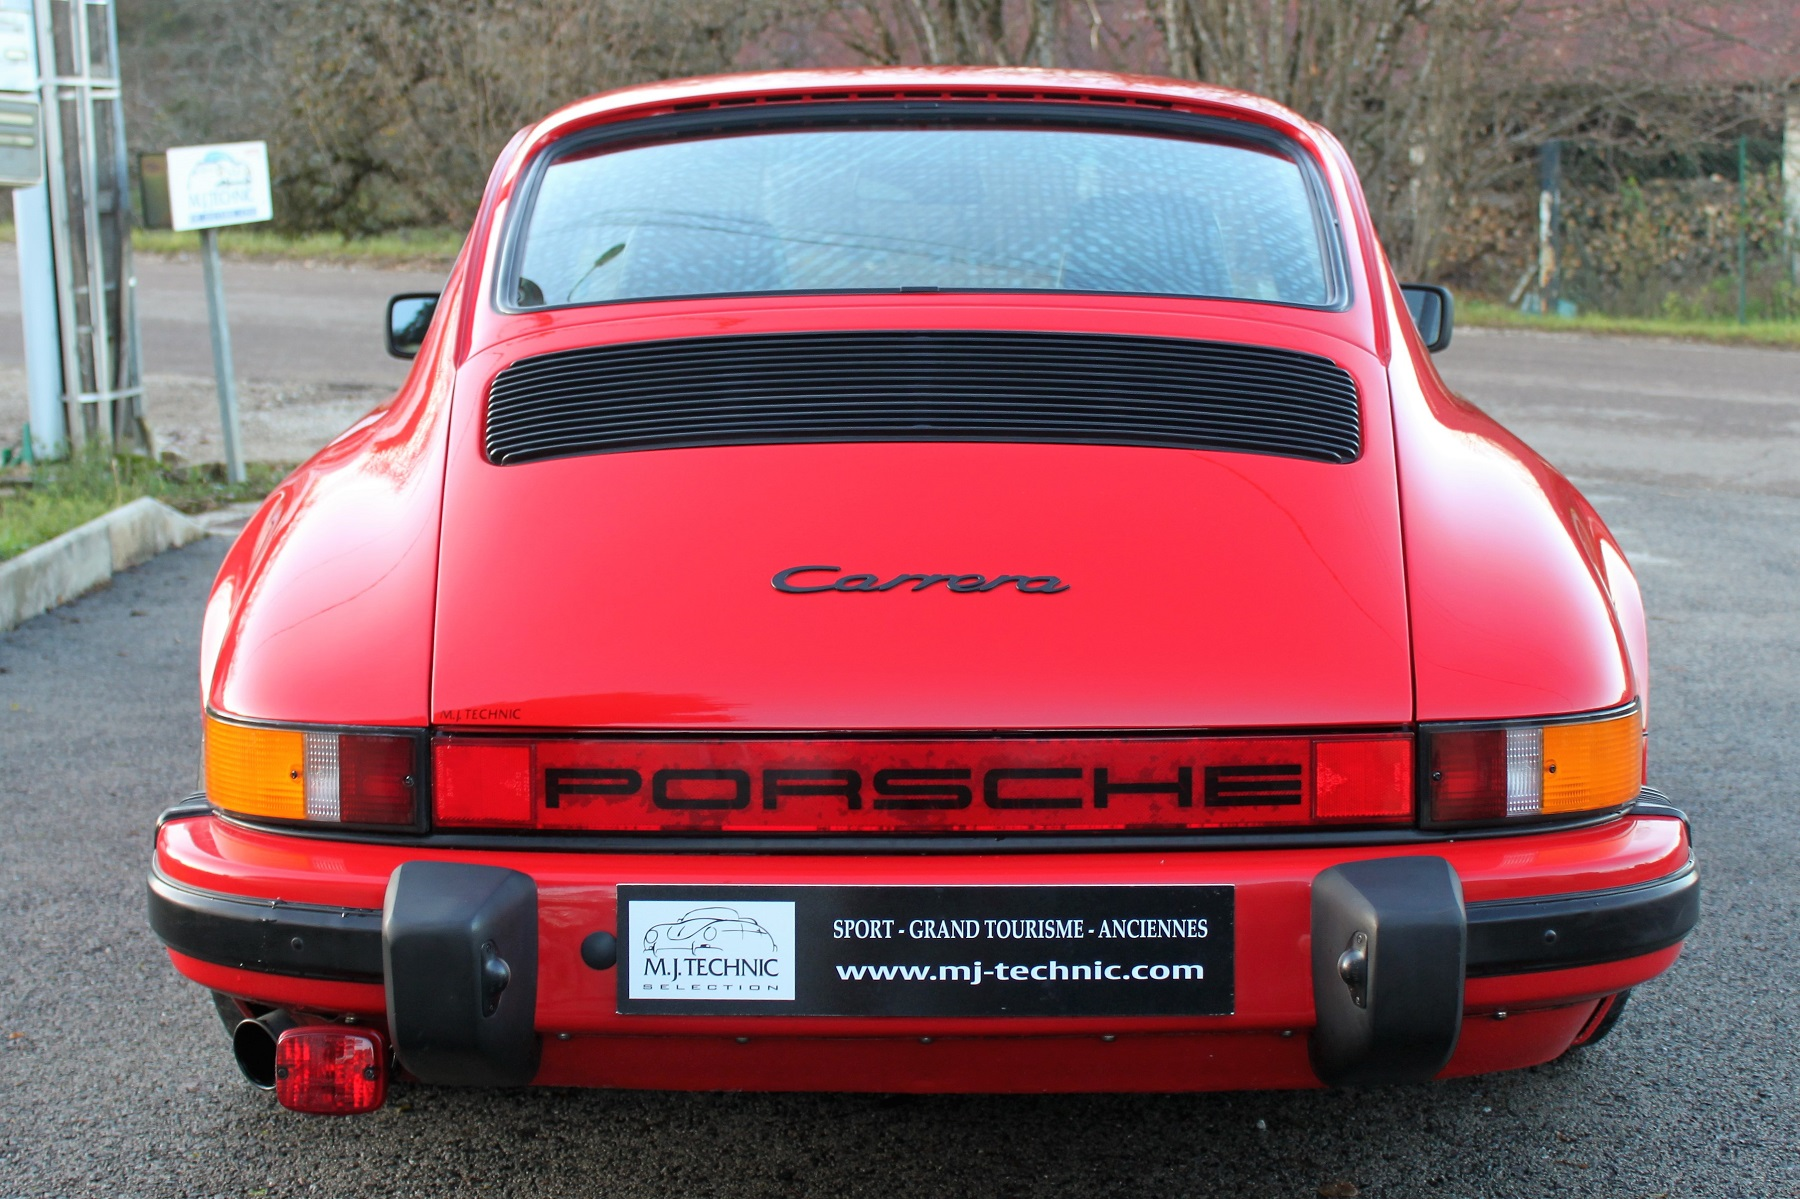 PORSCHE 911 3.2L 915 ROUGE INDIEN MJ TECHNIC (9)